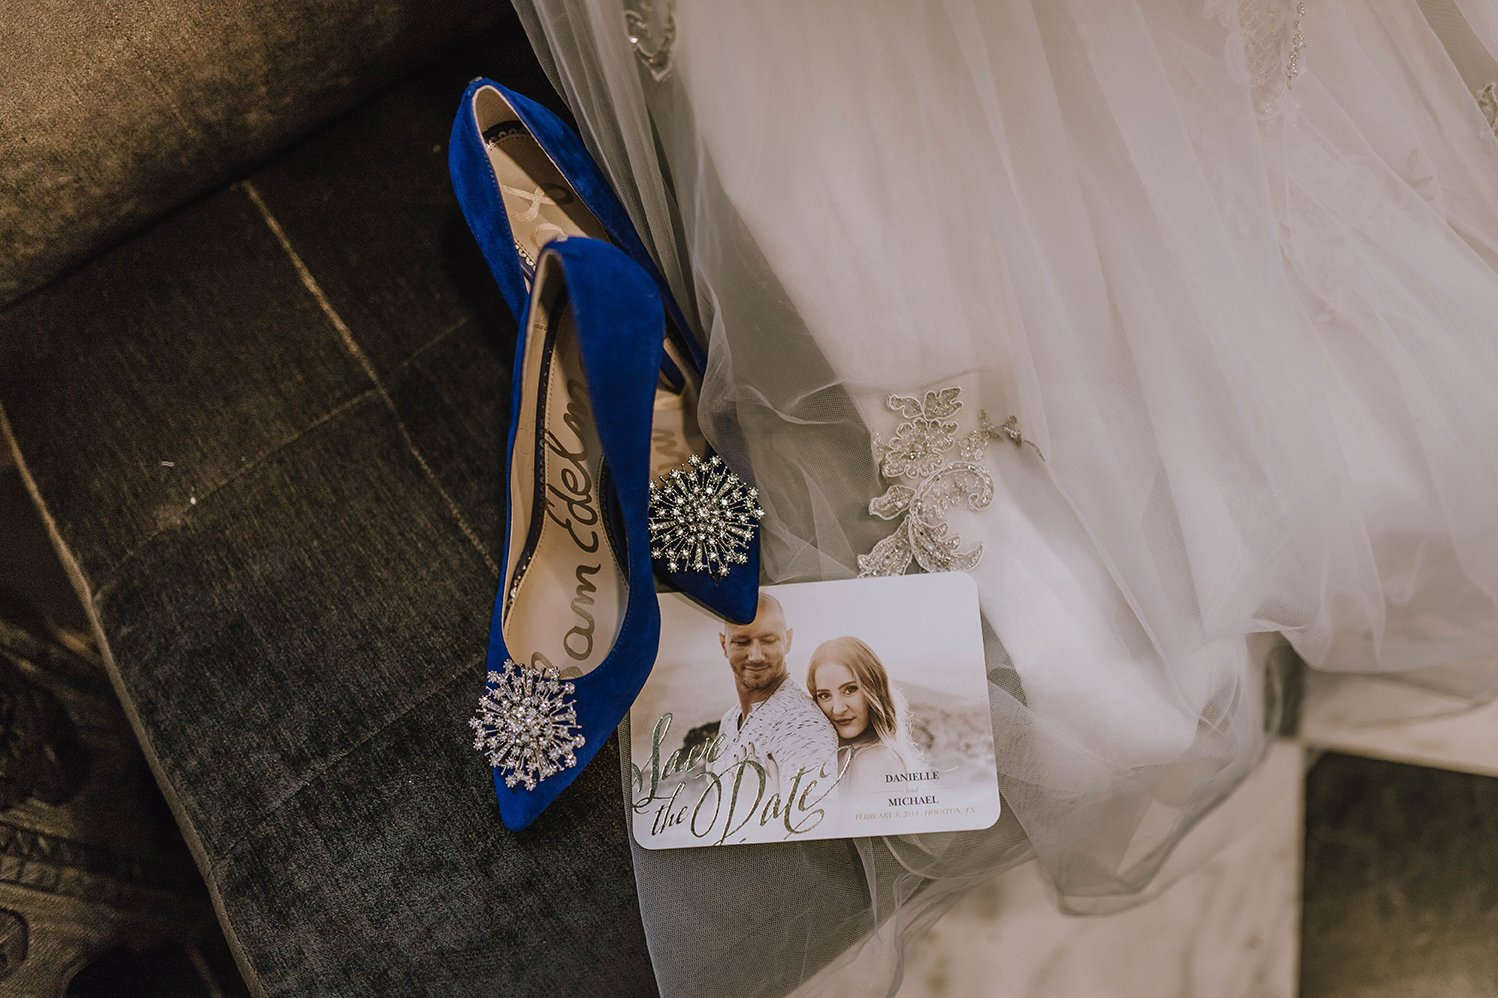 houston, bride, hotel wedding, getting ready, save the date, something blue, details